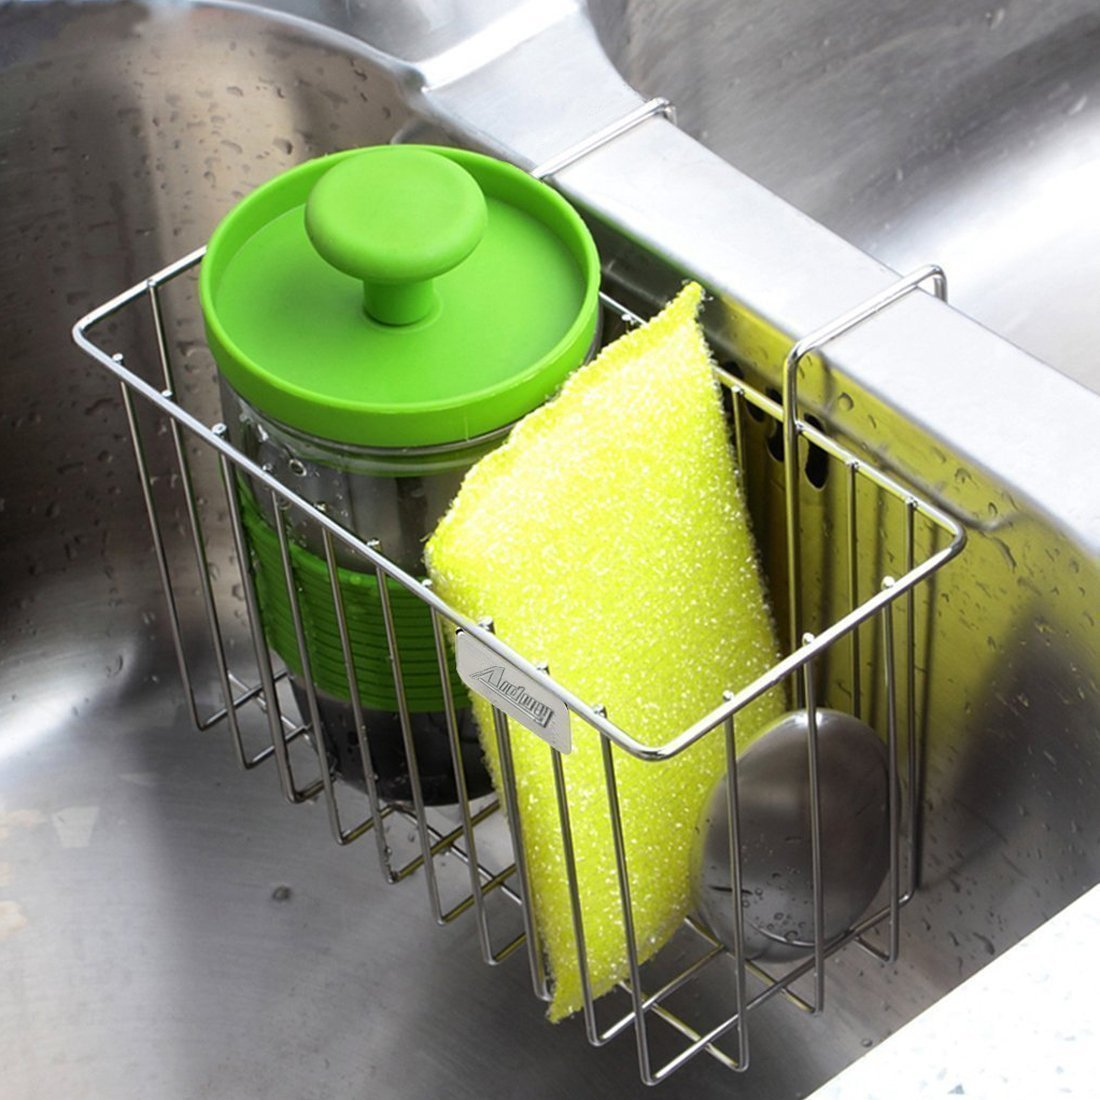 Kitchen Sponge Holder, Aiduy Sink Caddy Brush Soap Dishwashing Liquid Drainer Rack - Stainless Steel 0787639489221 SYNCHKG112187